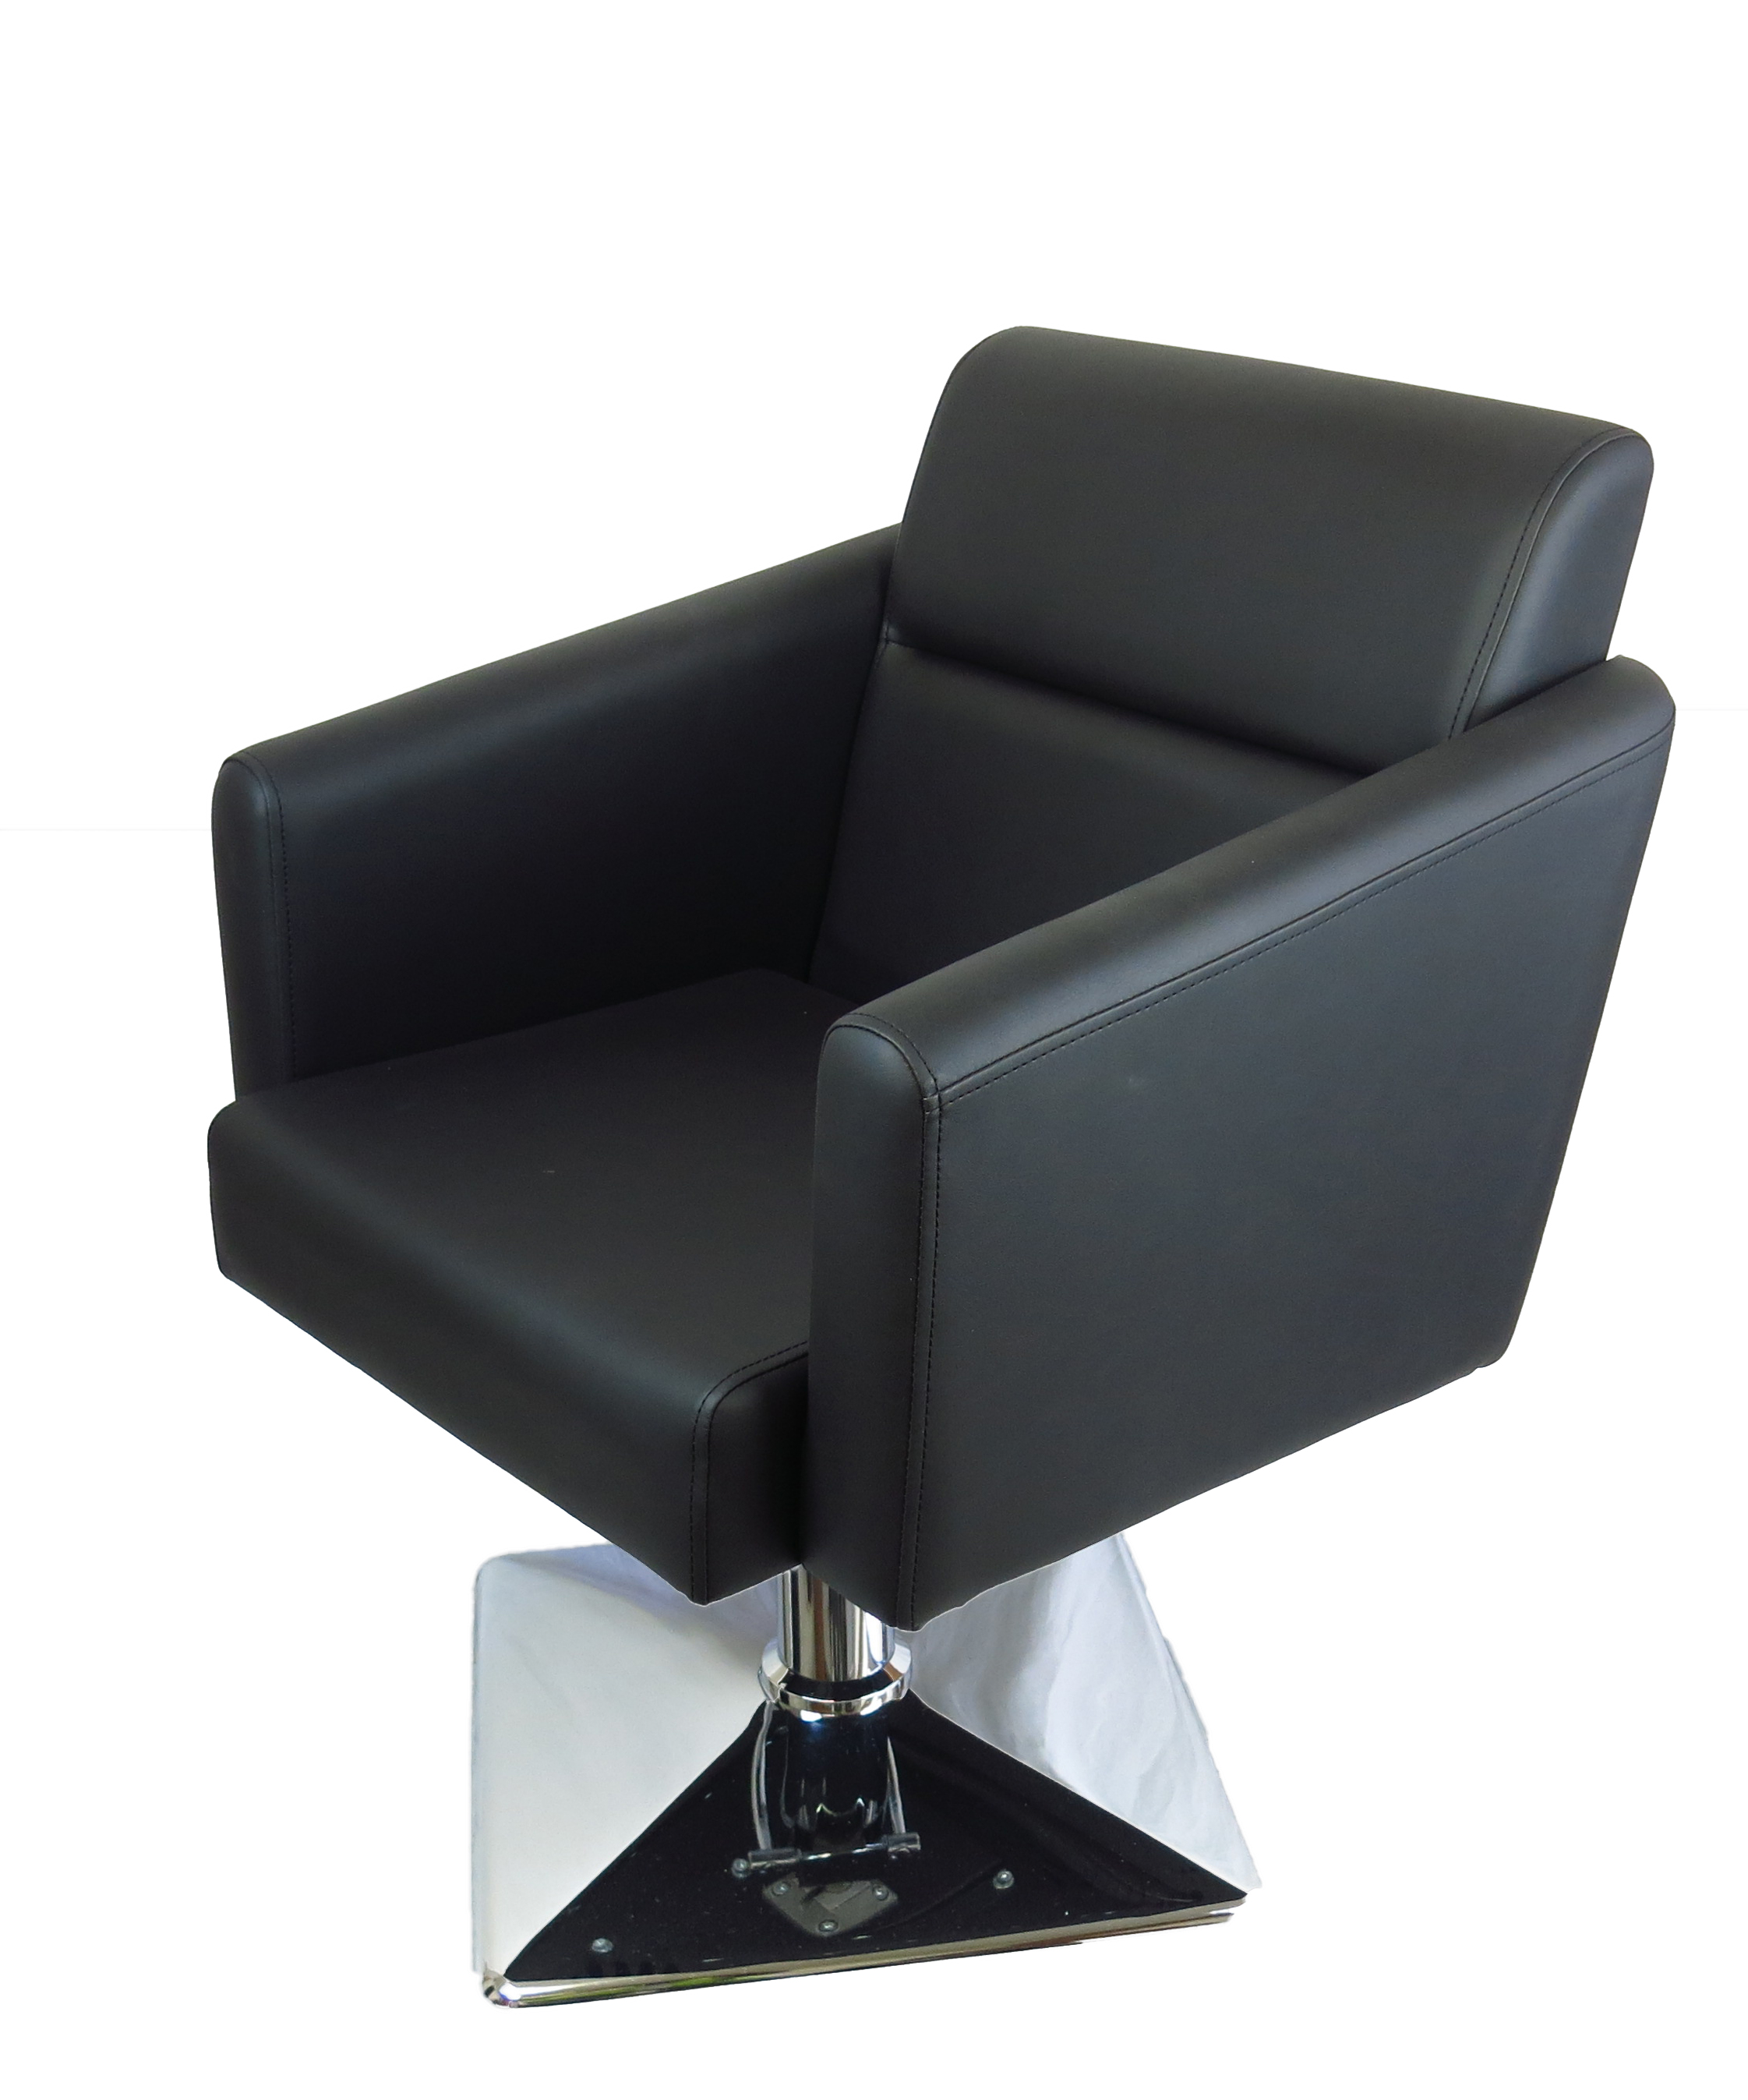 Tanya Hydraulic Salon Chair